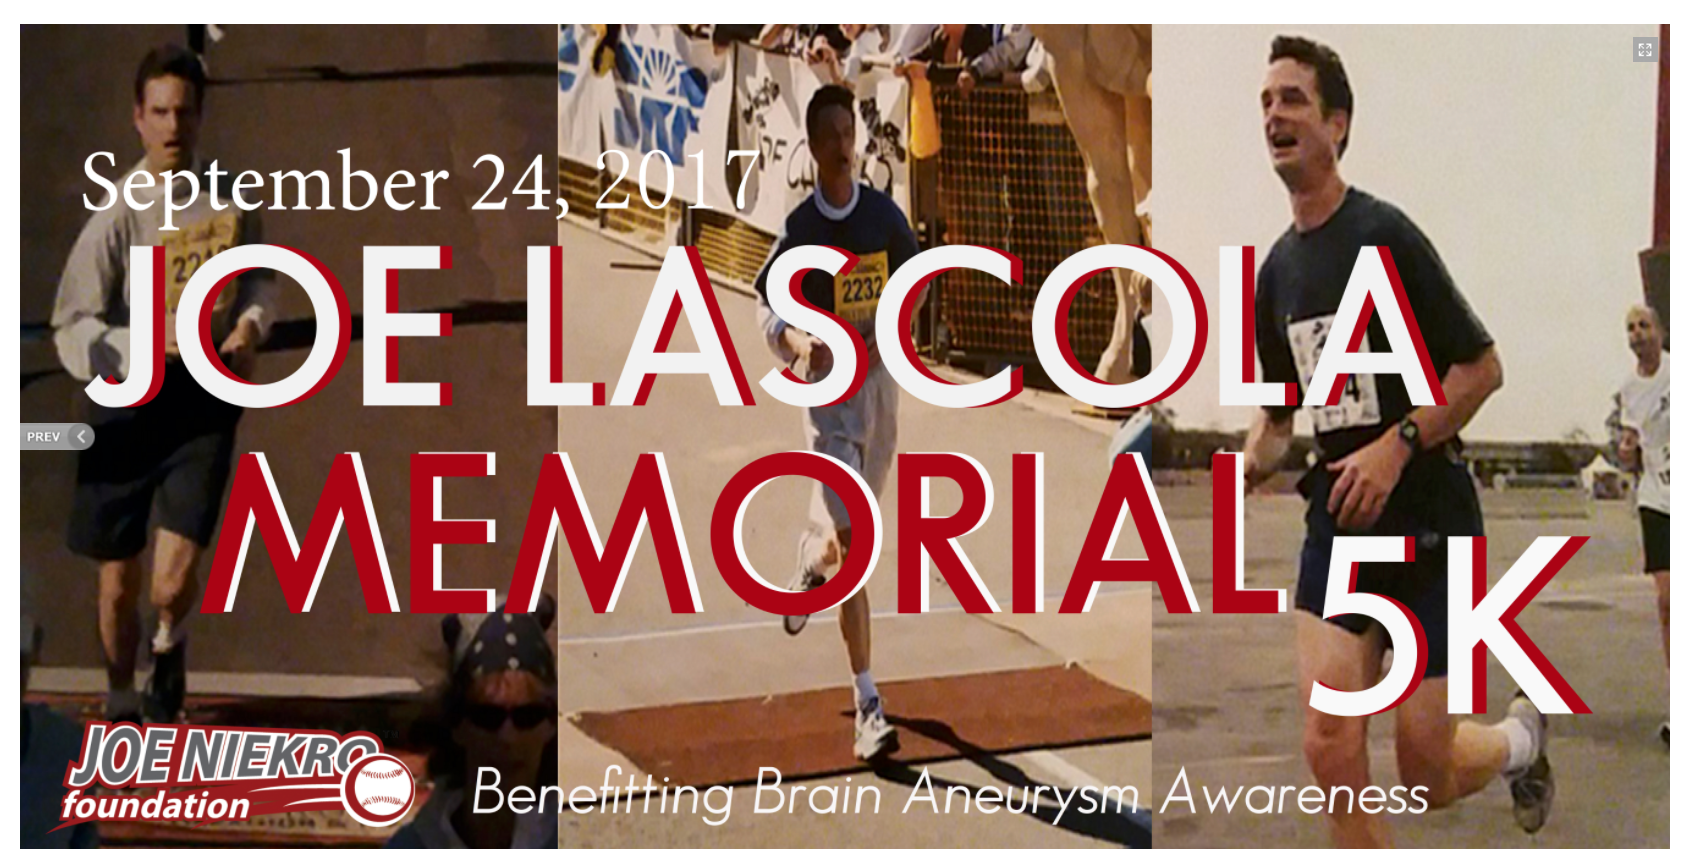 https://www.joeniekrofoundation.com/events/past-events/pastevents2017/joe-lascola-memorial-walk/attachment/untitled-1/